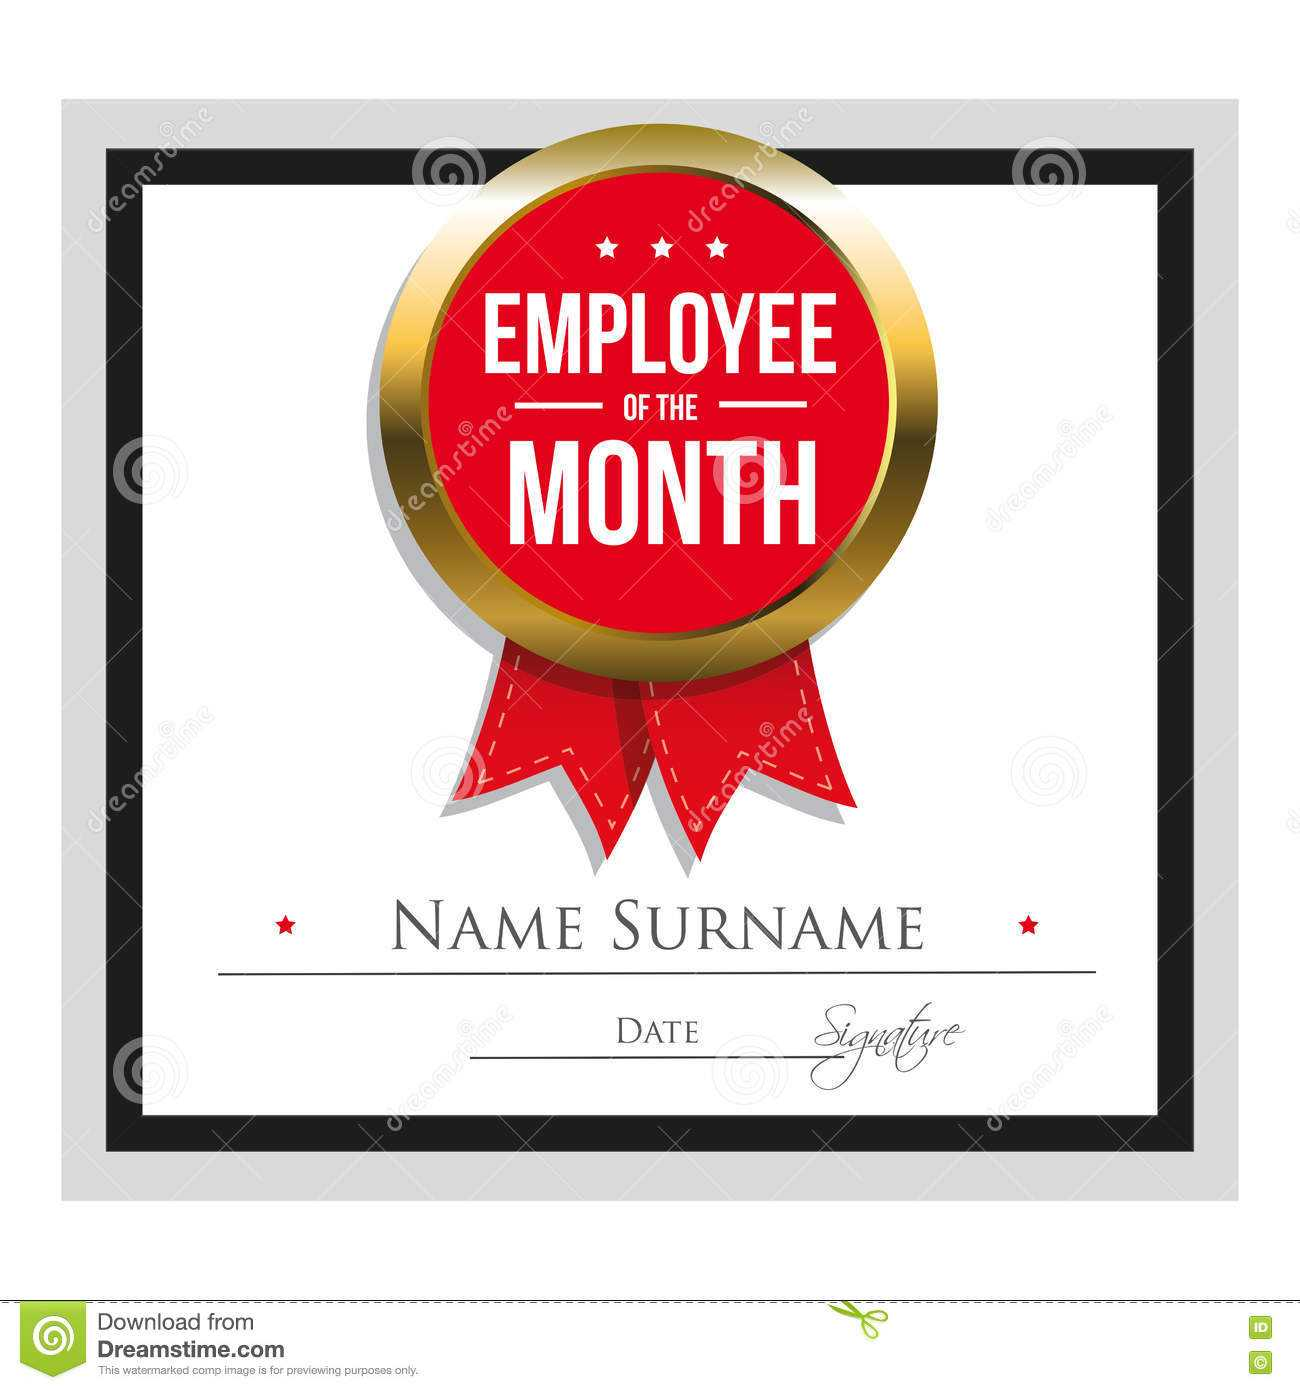 Employee Of The Month Certificate Template Stock Vector Throughout Employee Of The Year Certificate Template Free